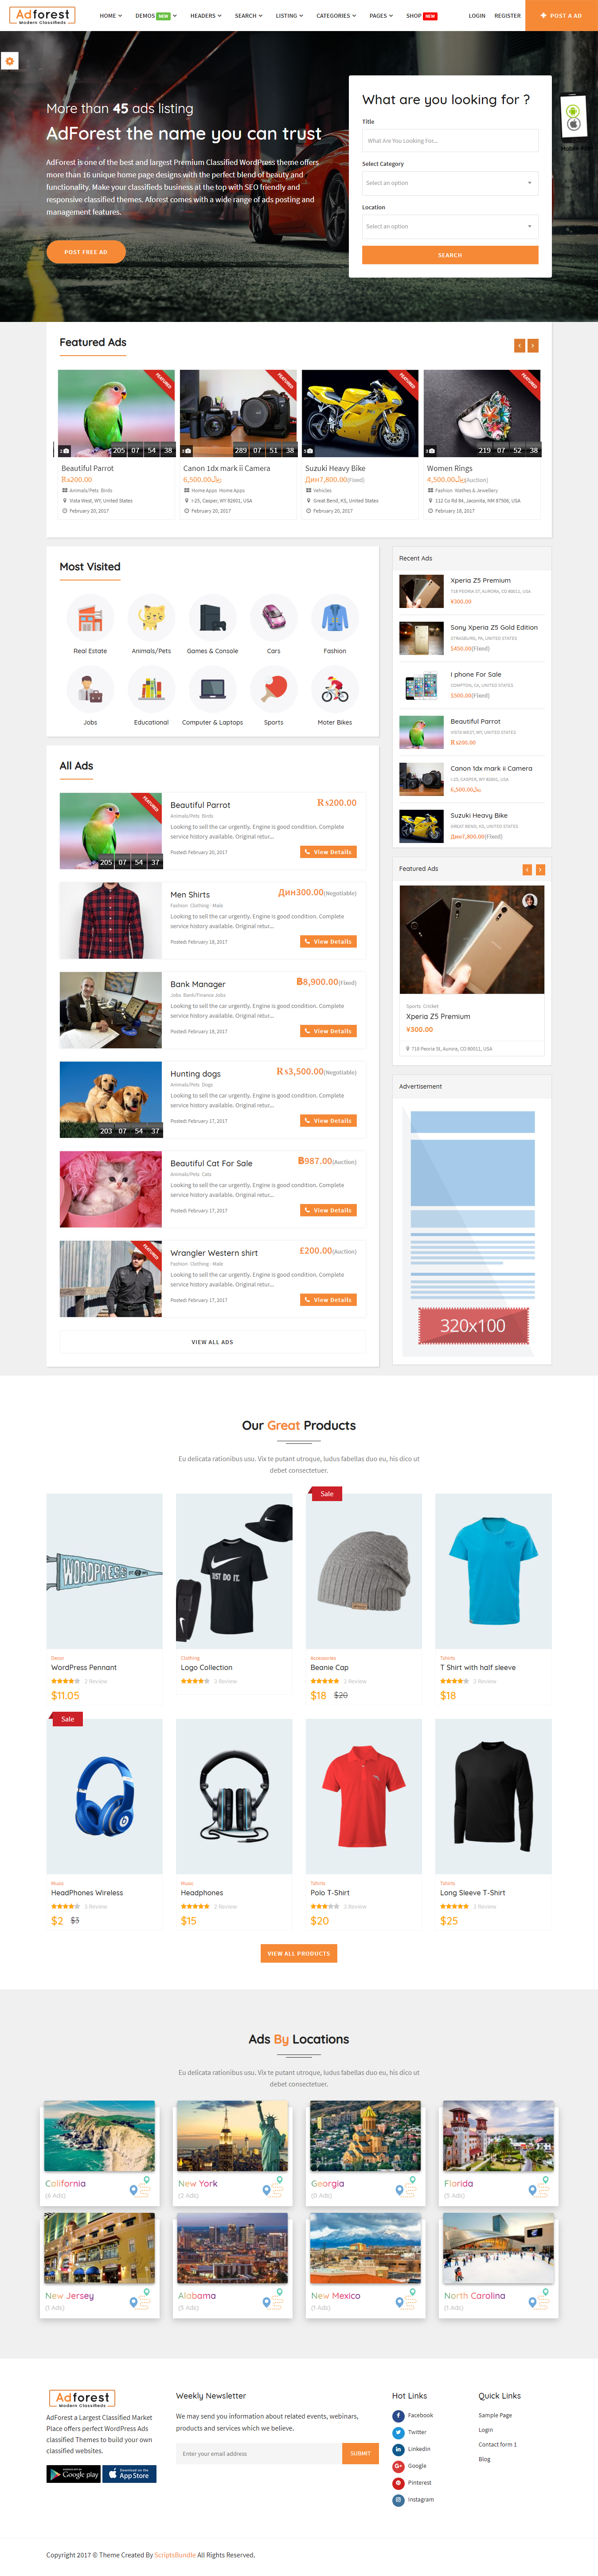 adforest best premium classified wordpress theme - 10+ Best Premium Classified WordPress Themes